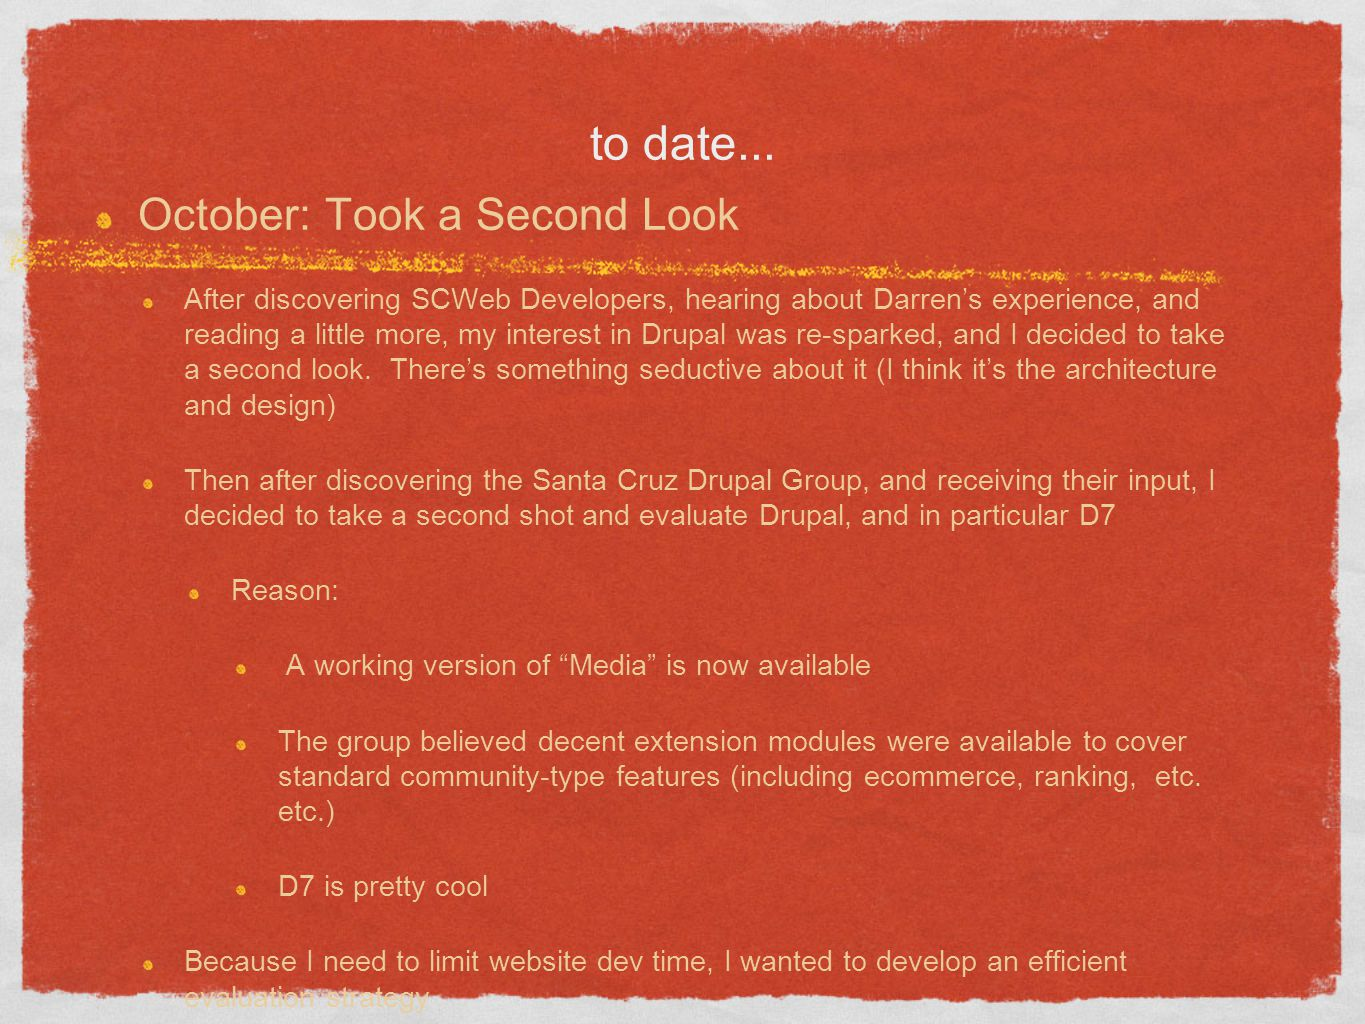 to date... October: Took a Second Look After discovering SCWeb Developers, hearing about Darrens experience, and reading a little more, my interest in